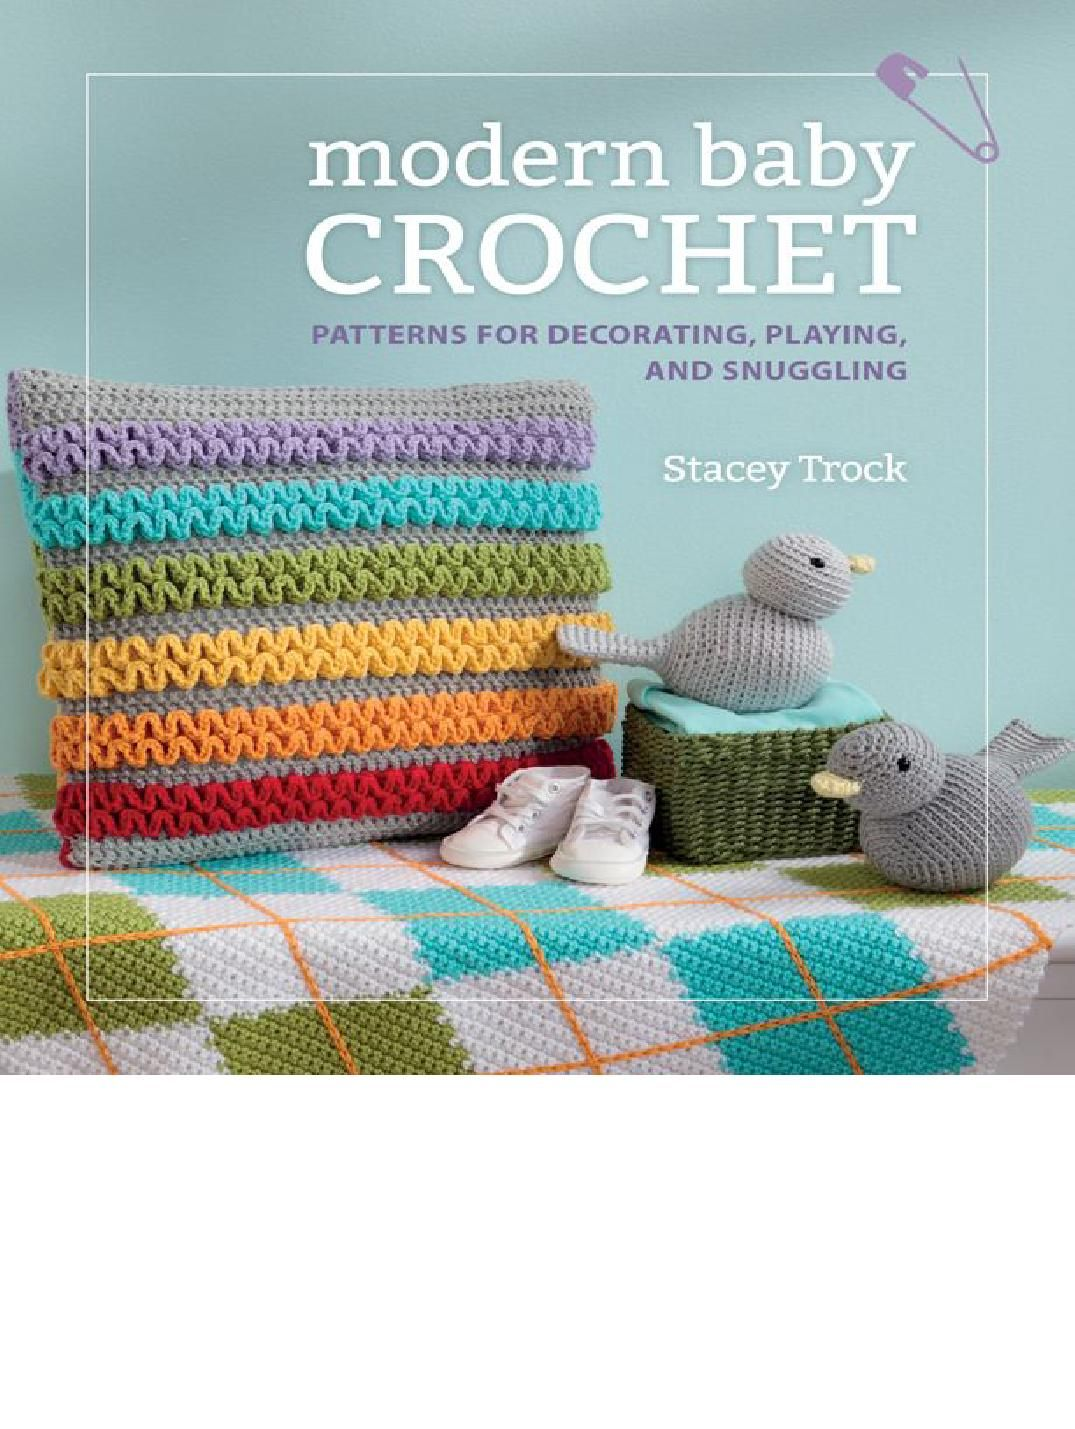 Modern baby crochet book in Russian or kinda... Some cute design, someone  for a translation ? ;-)